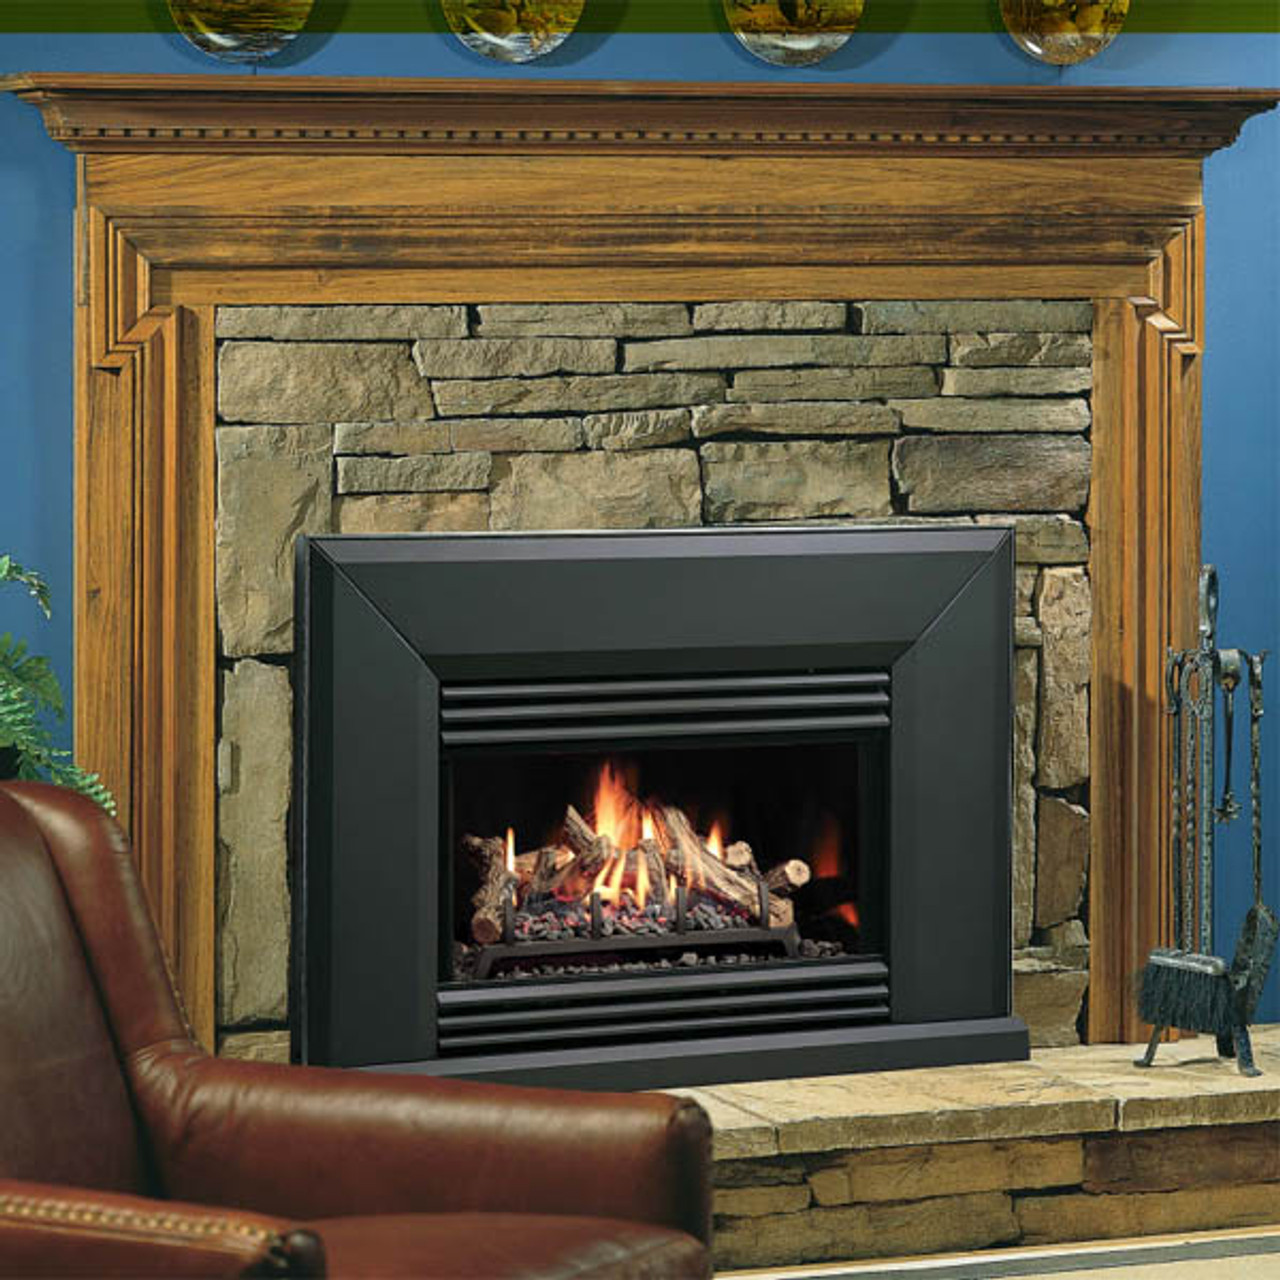 Kingsman VFI25 Vented Gas Fireplace Insert